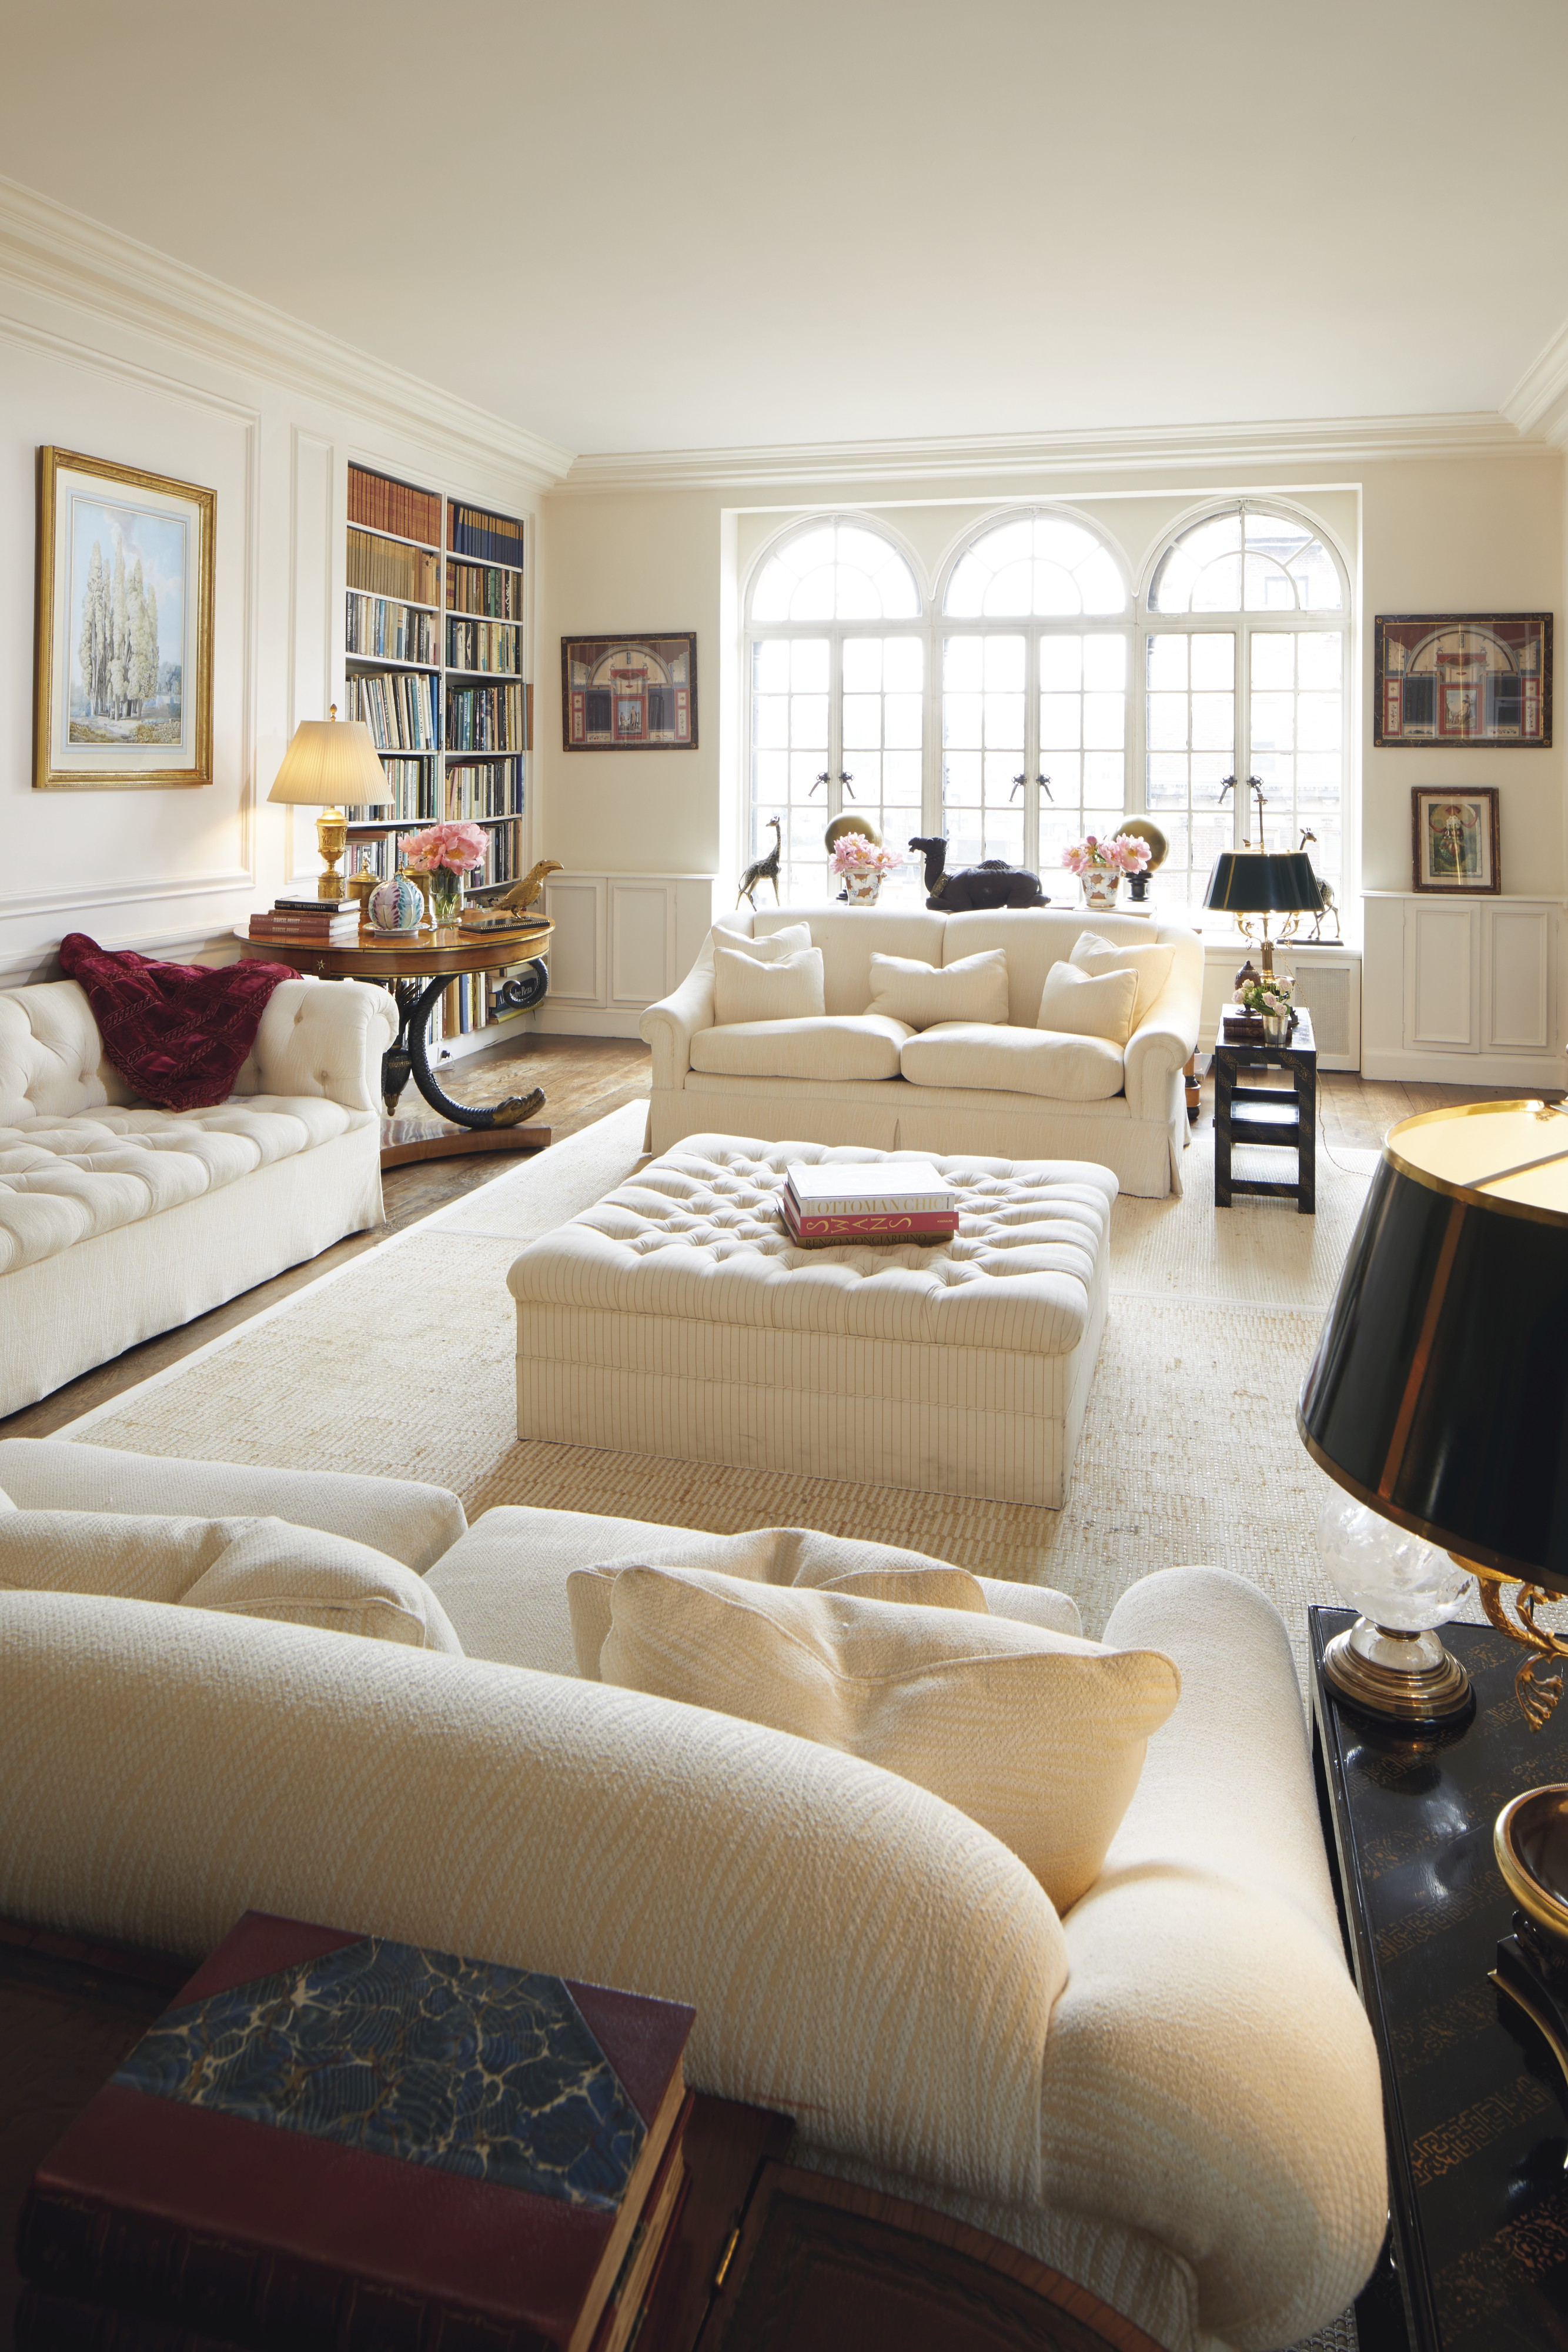 Select items from Lee Radziwill's living room will be auctioned October 17 at Christie's.